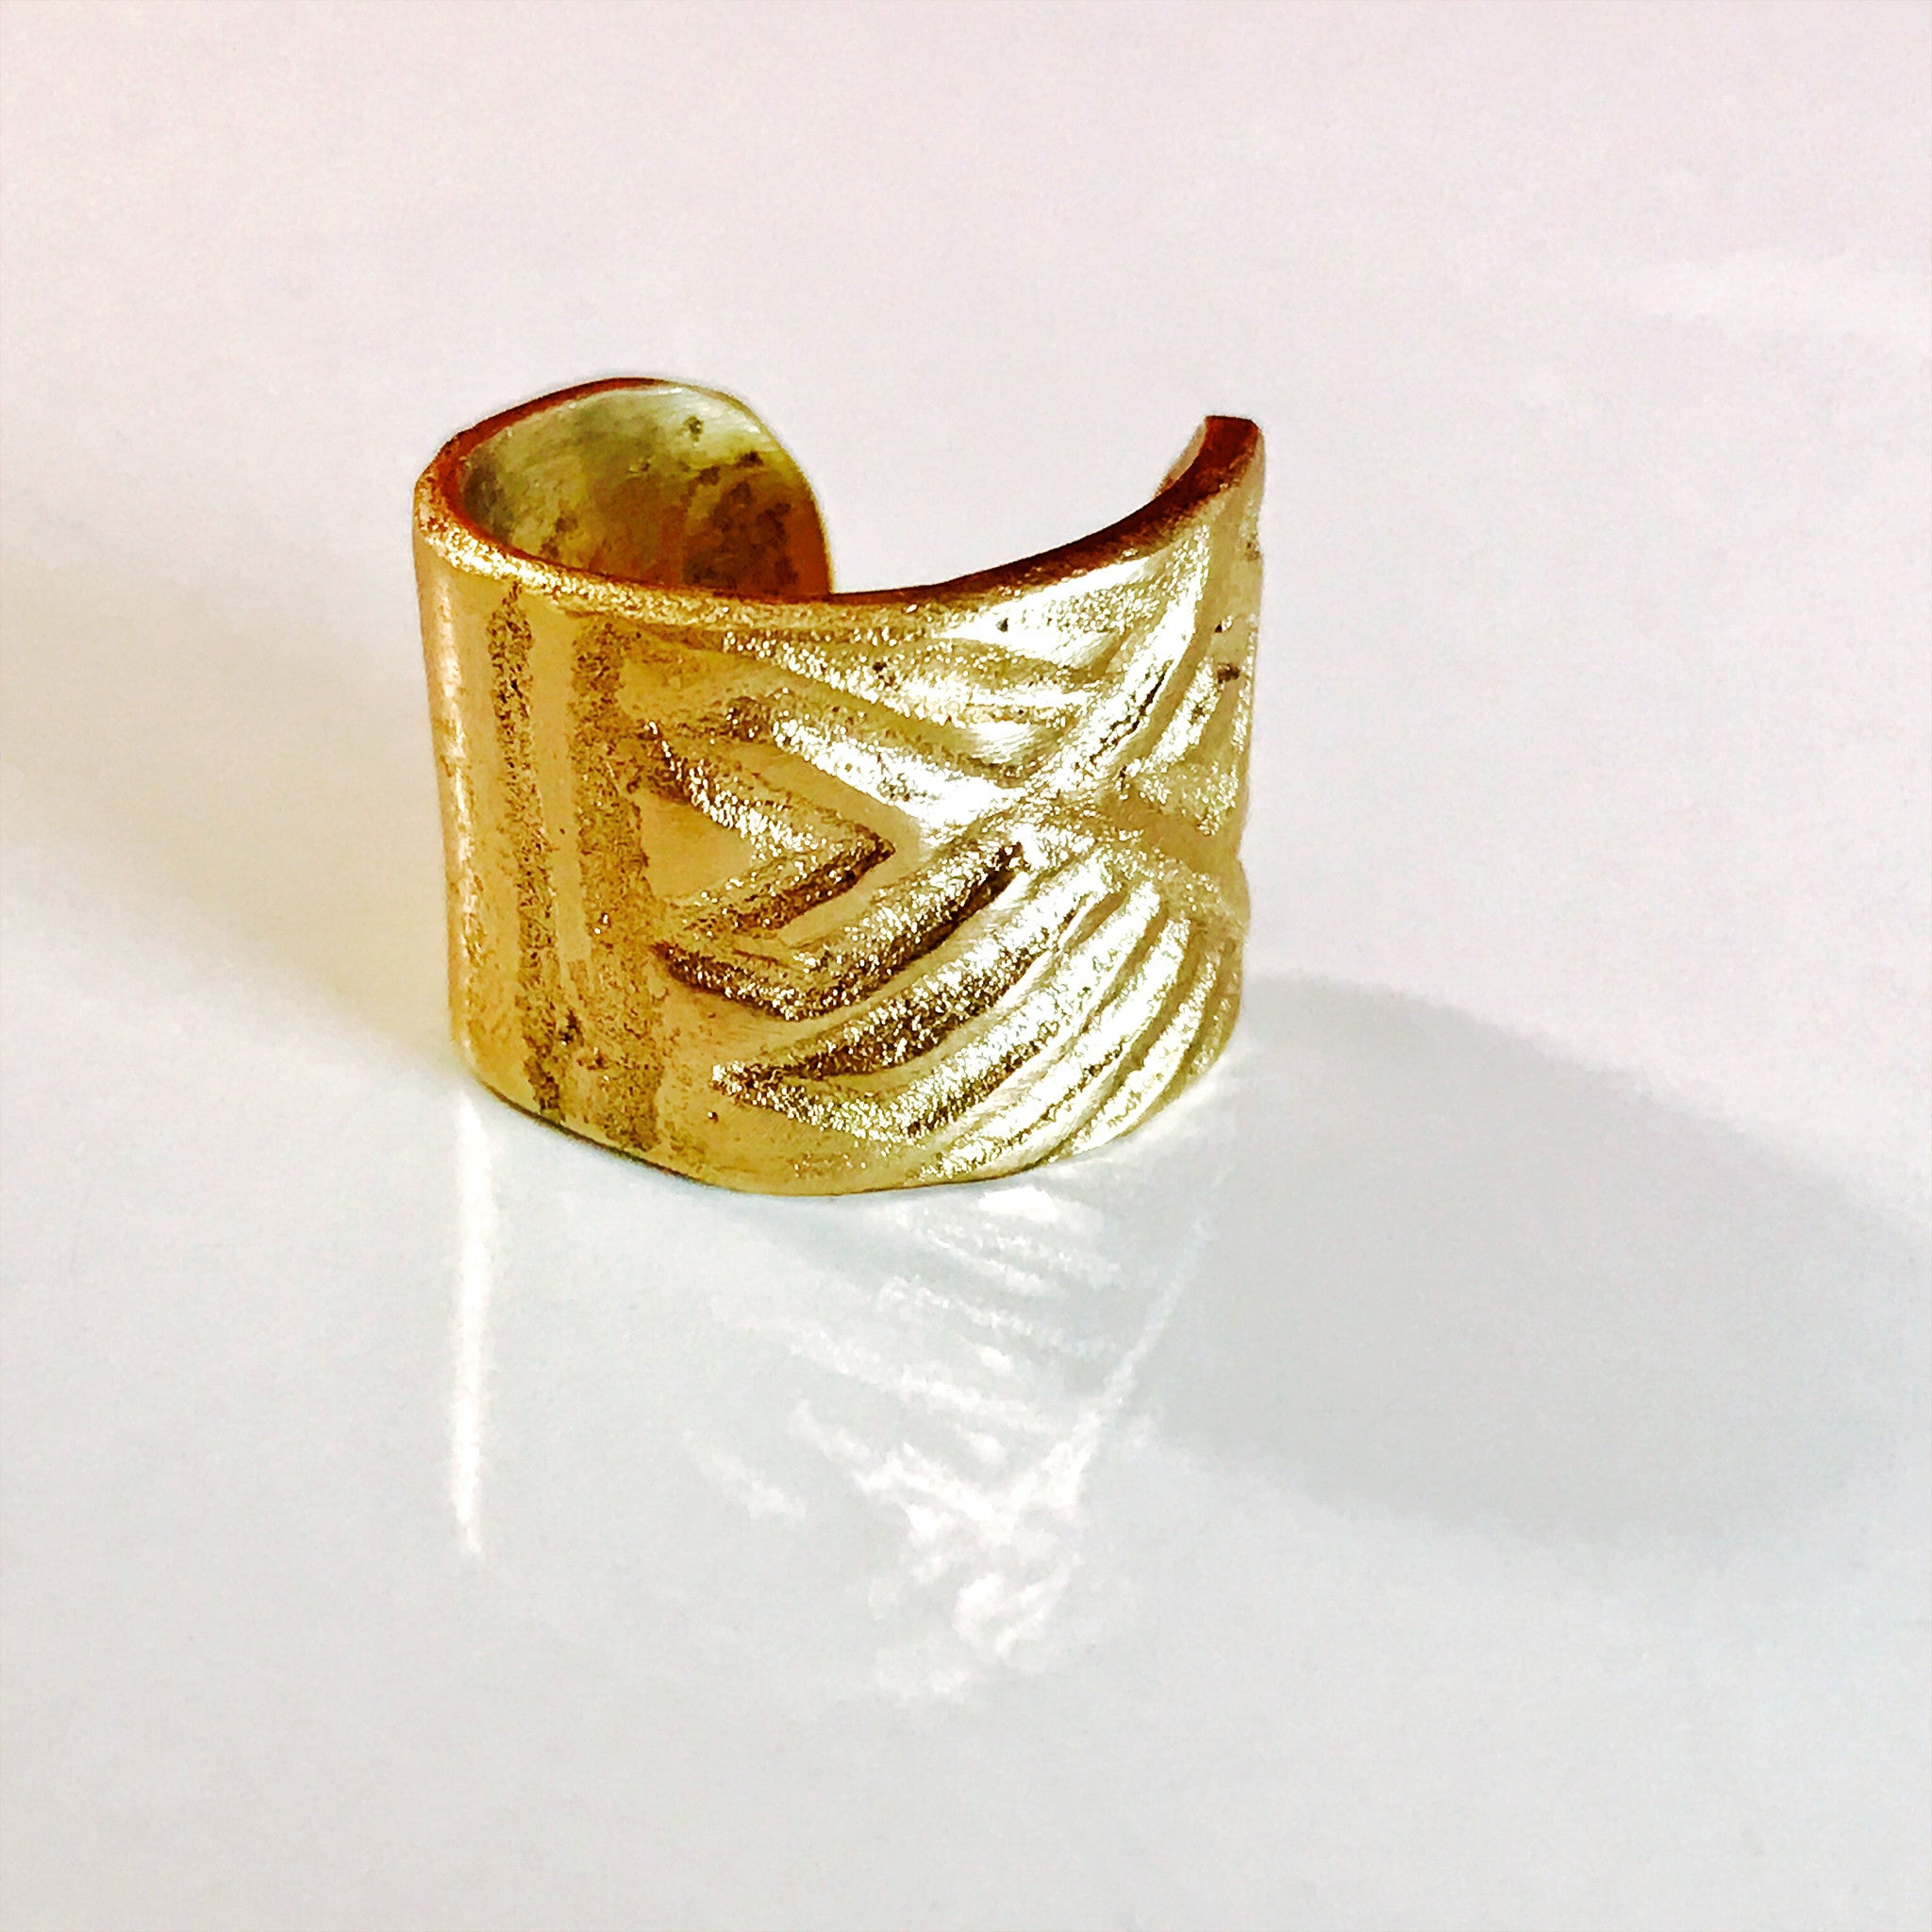 Imprinted Ring - $89